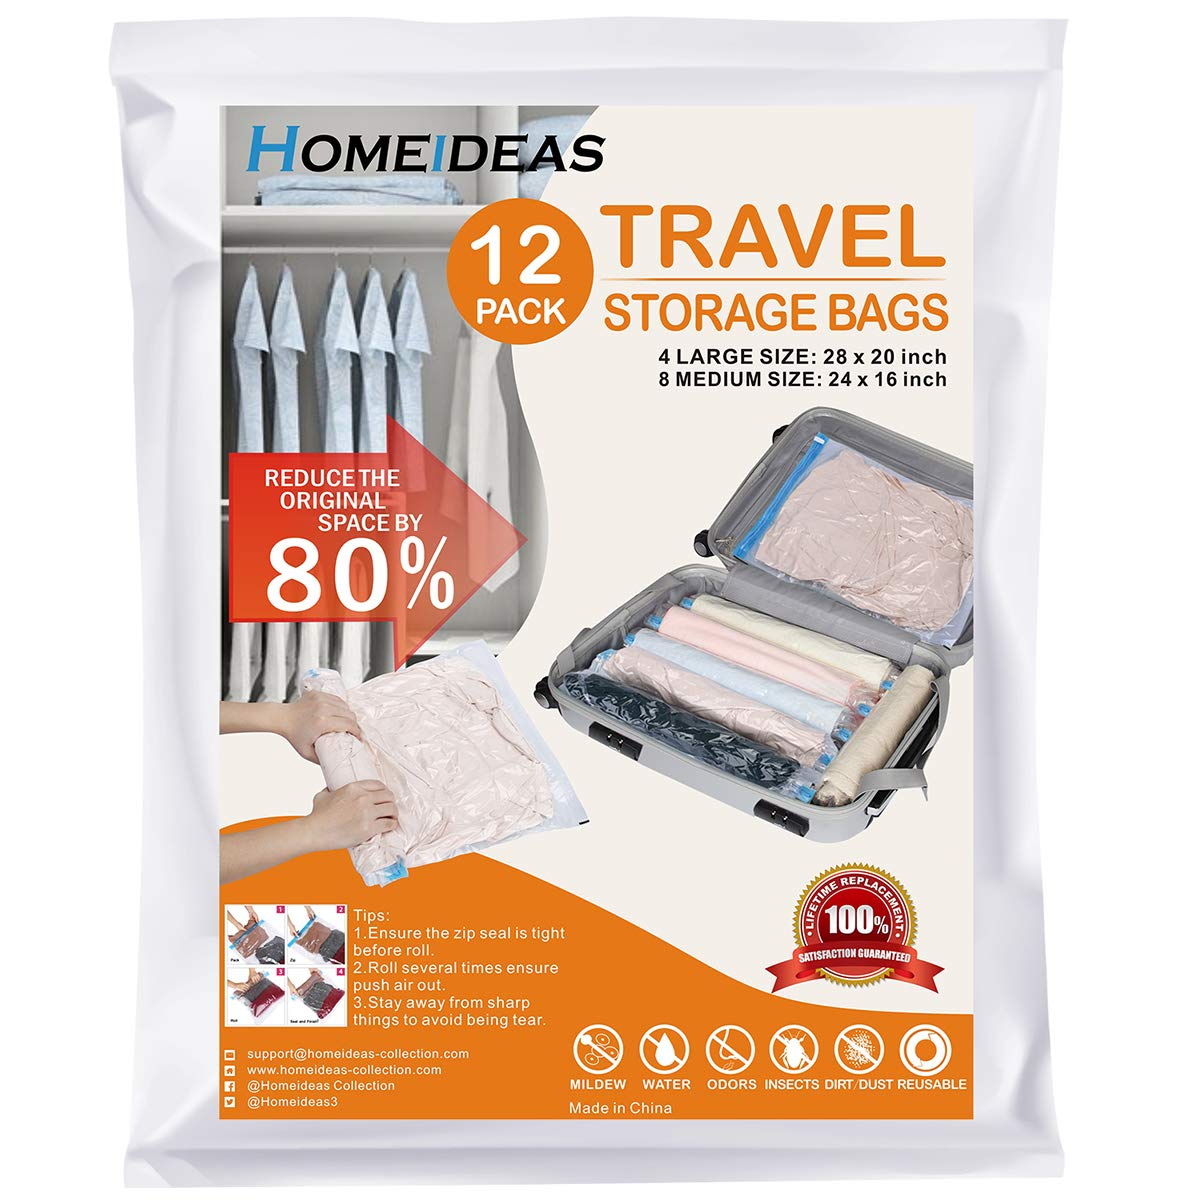 HOMEIDEAS 12 Travel Space Saver Bags - Roll up Storage Bags for Clothes - Compression Bags for Travel - No Vacuum Needed - Save Space in Your Luggage (4 x Large, 8 x Medium)